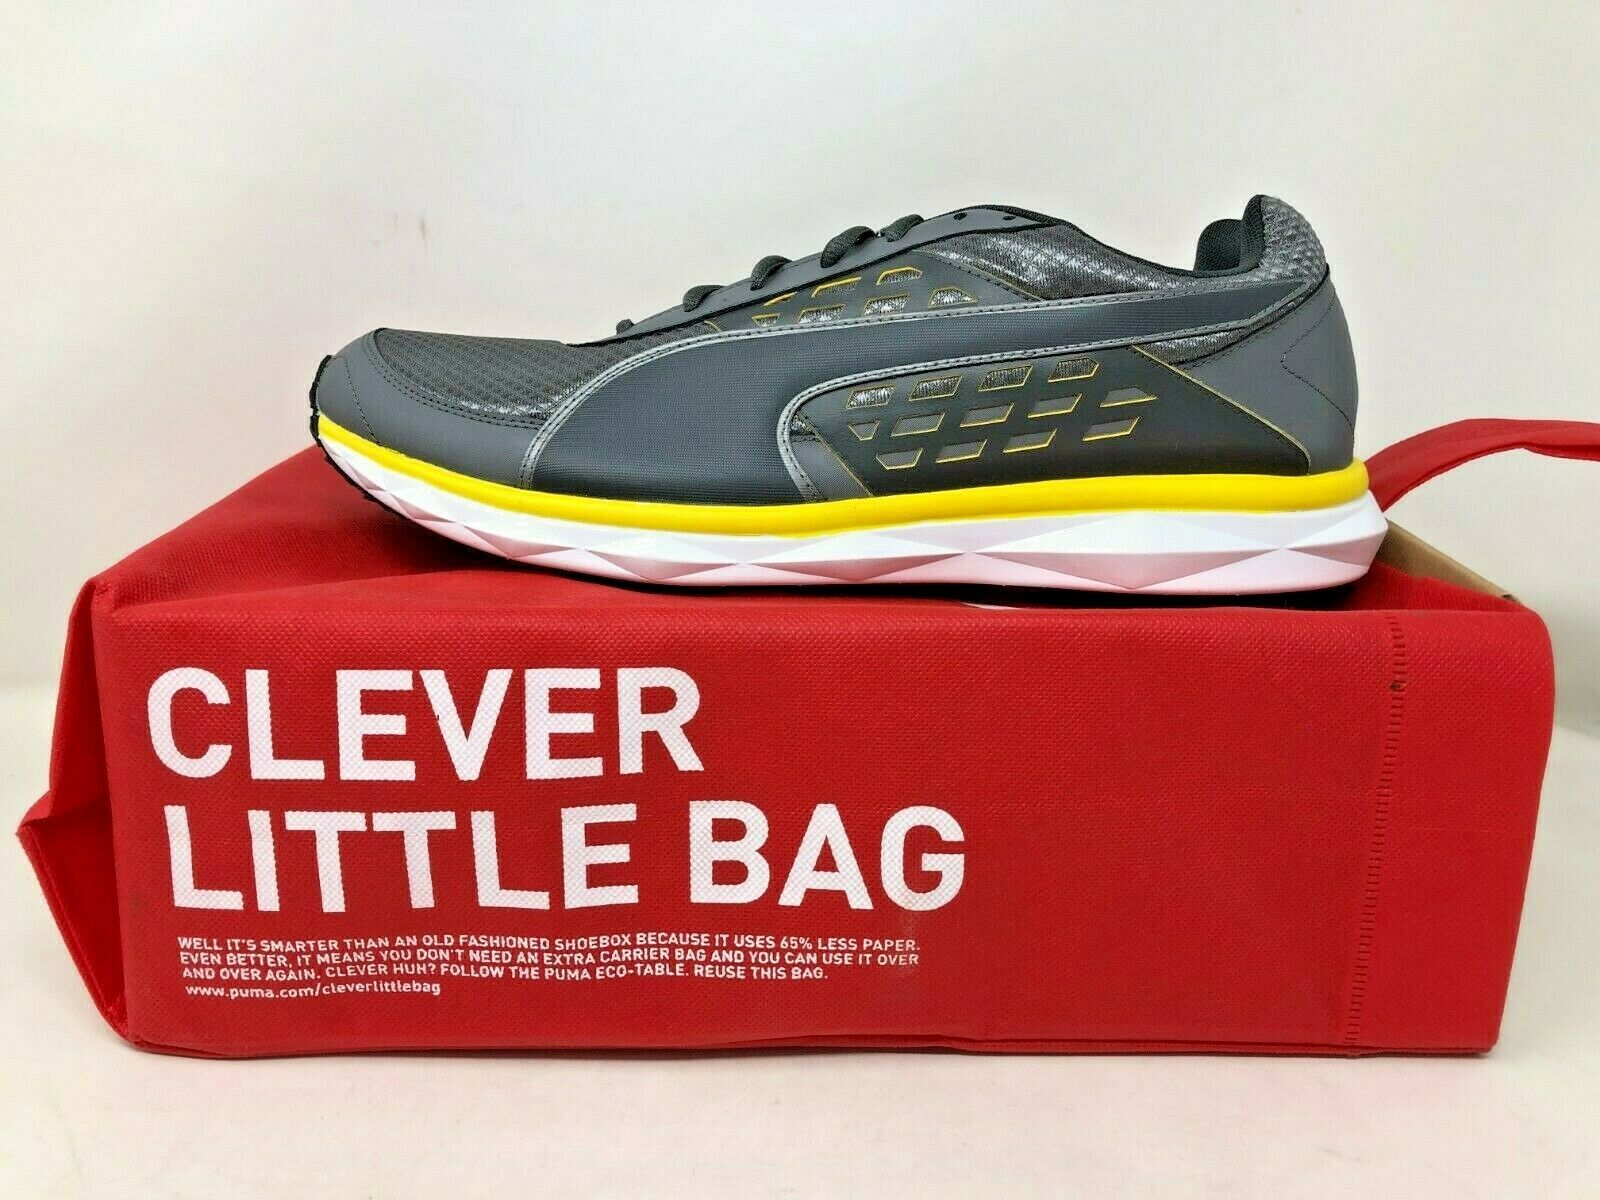 NEW    Puma Men's Lace Up Athletic shoes Grey Yellow Wht Size 14  18580802 g8 a f35320